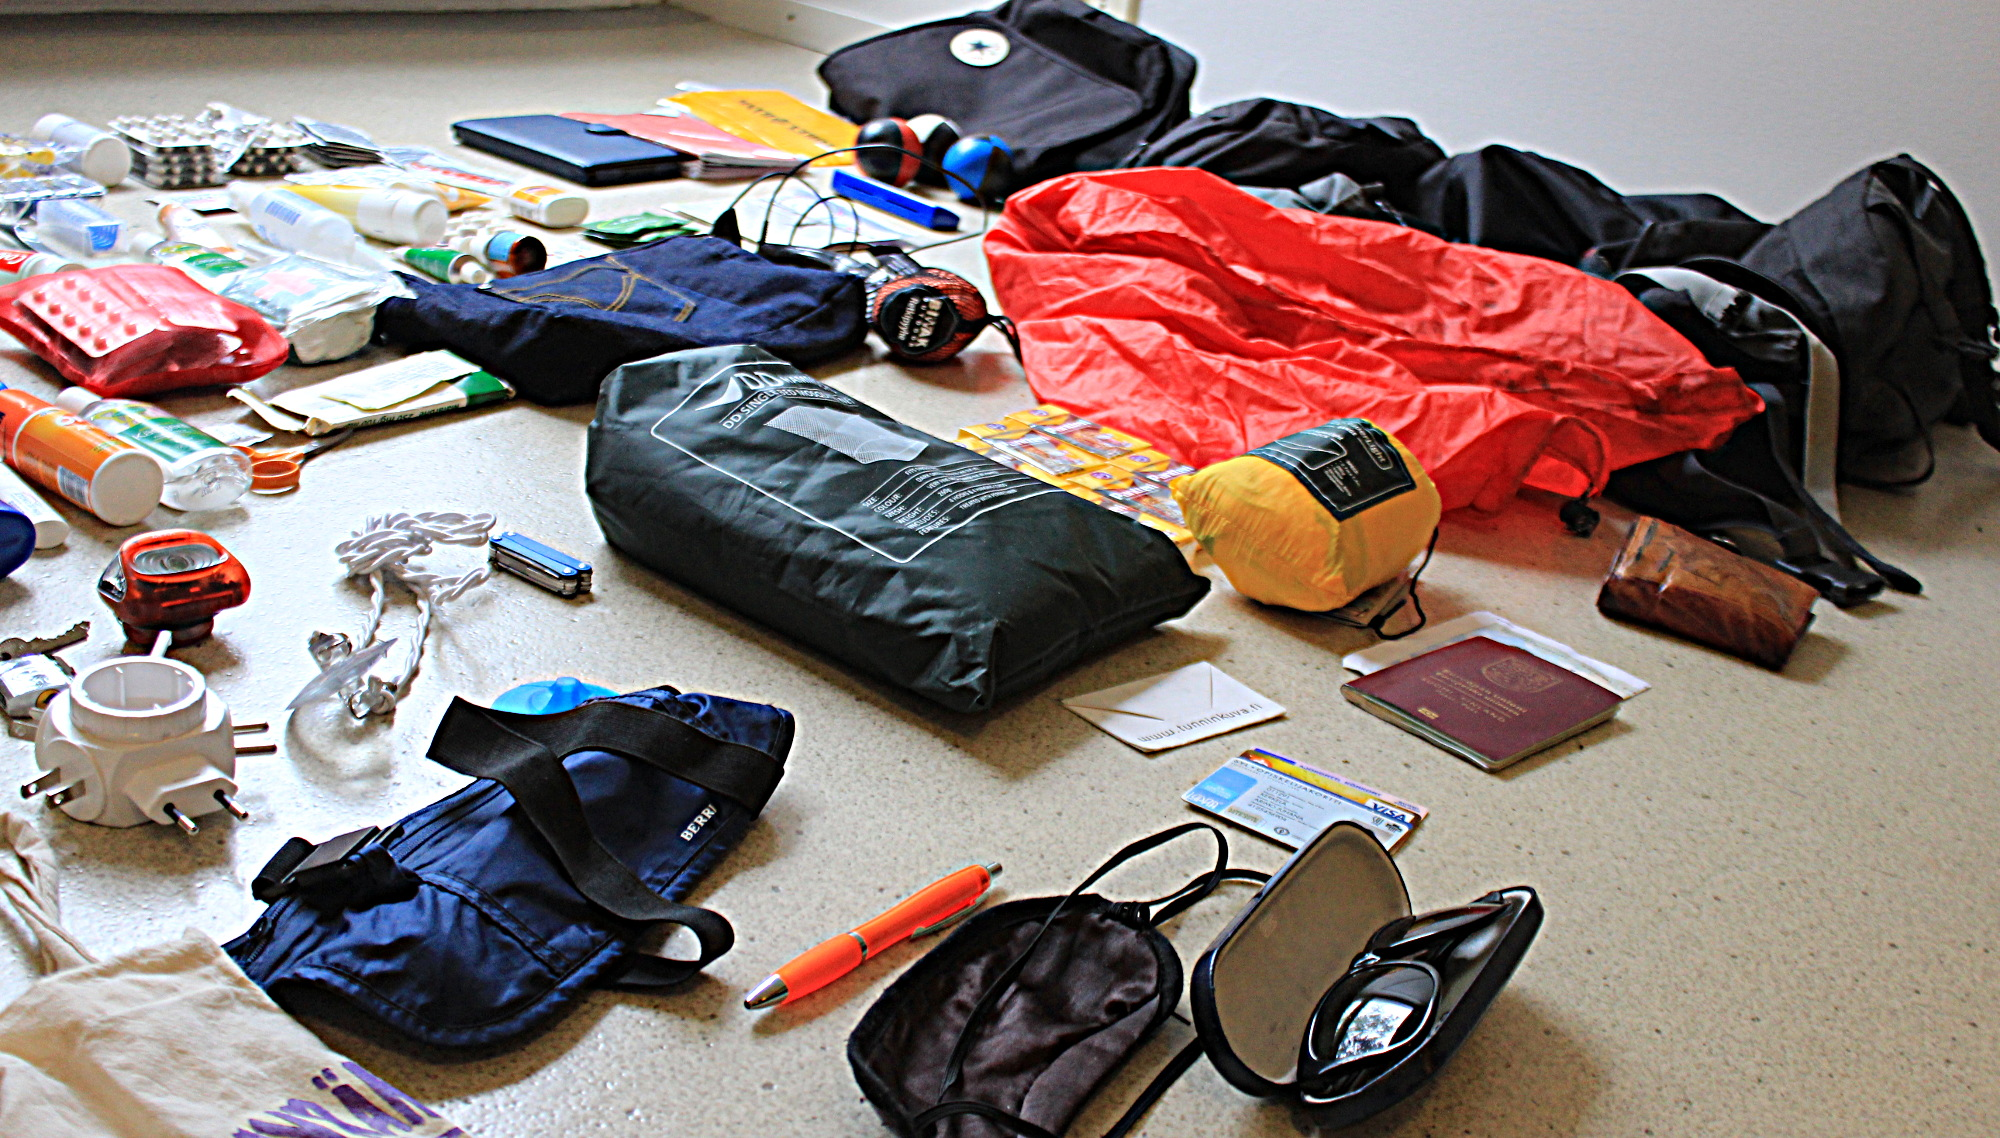 Travel equipment spread to cover the floor.